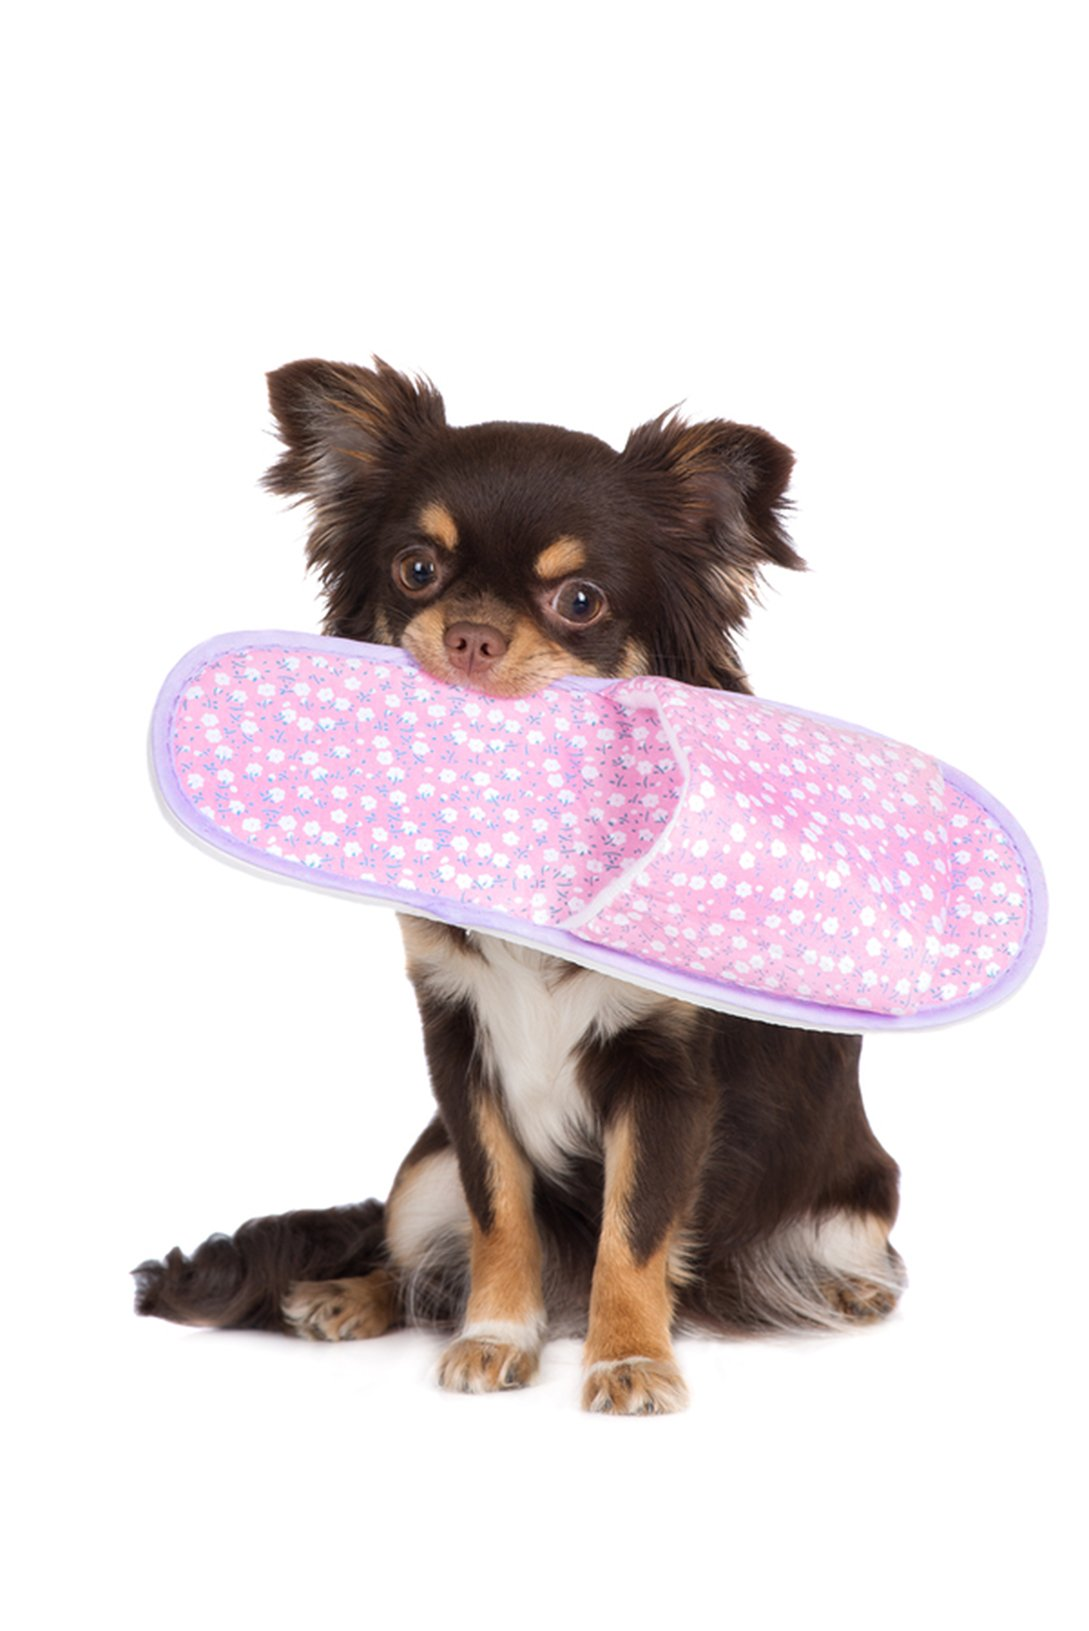 Chihuahua chewing slippers